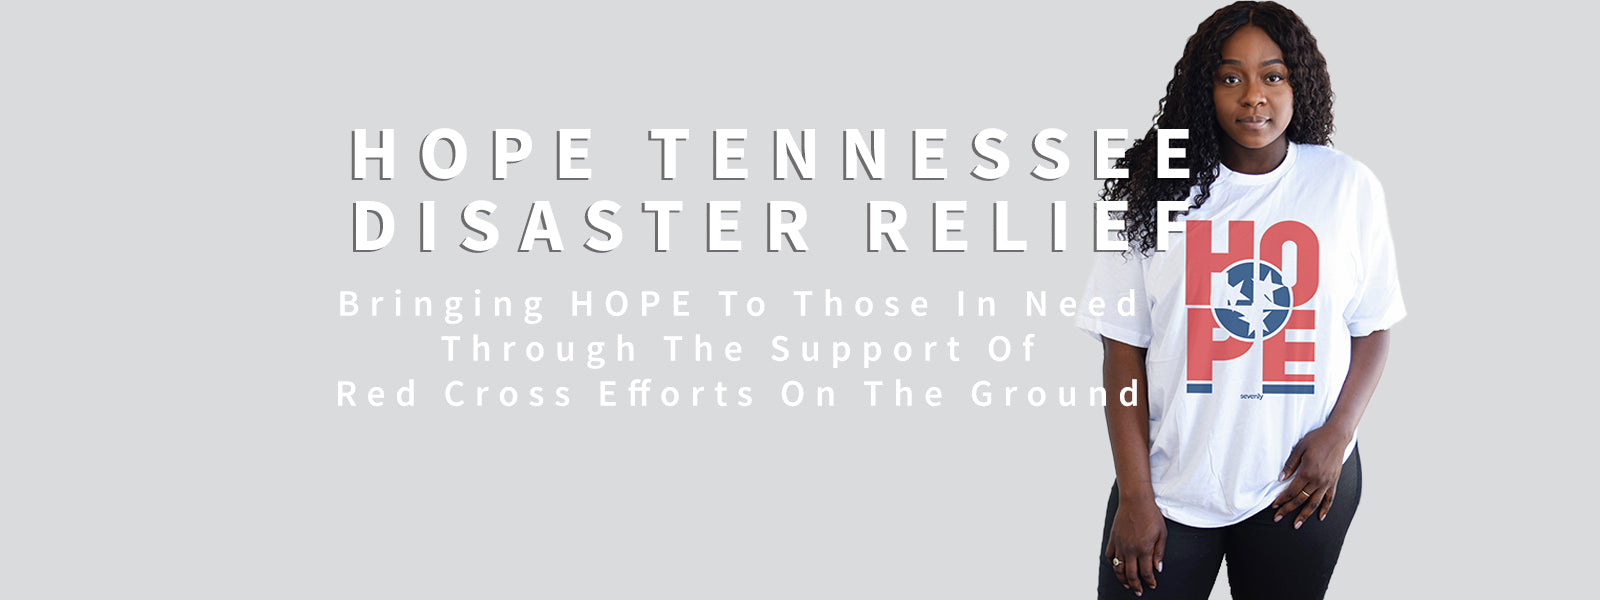 HOPE Tennessee Supporting The Red Cross Through The Work and Efforts of Sevenly.org